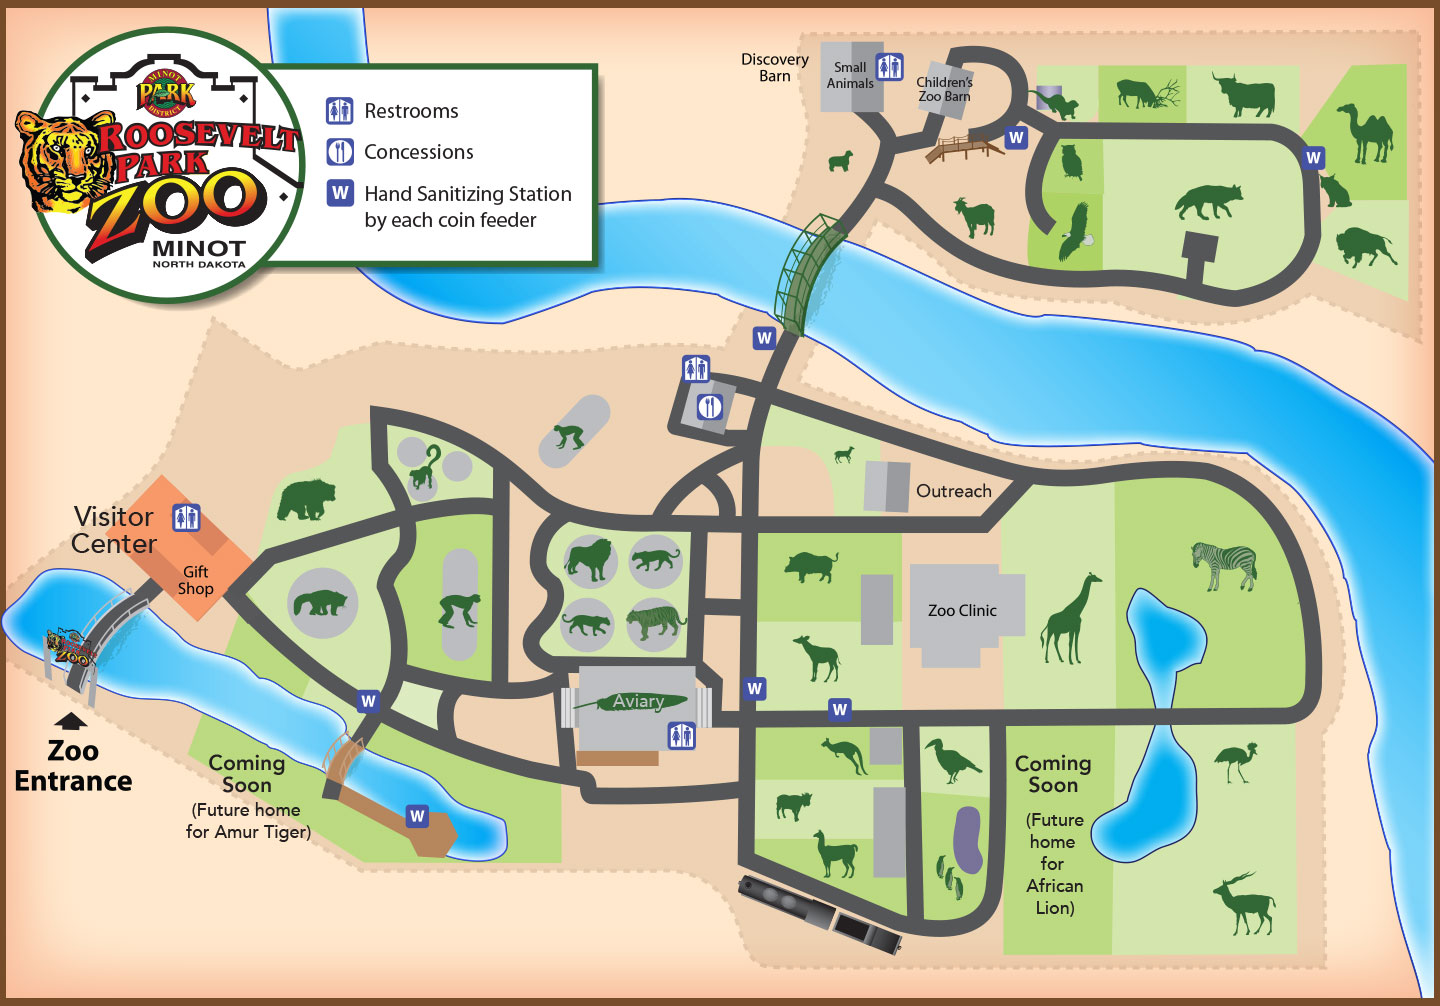 Zoo Map | Zoo Map on playground map, aquarium map, z nation map, zog map, community map, parks map, museum map, beach map, ocean map, illegal wildlife trade map, animal map, neighborhood map, bedroom map, world map, sense8 map, big cat map, singapore map, farm map, stadium map, the 100 map,